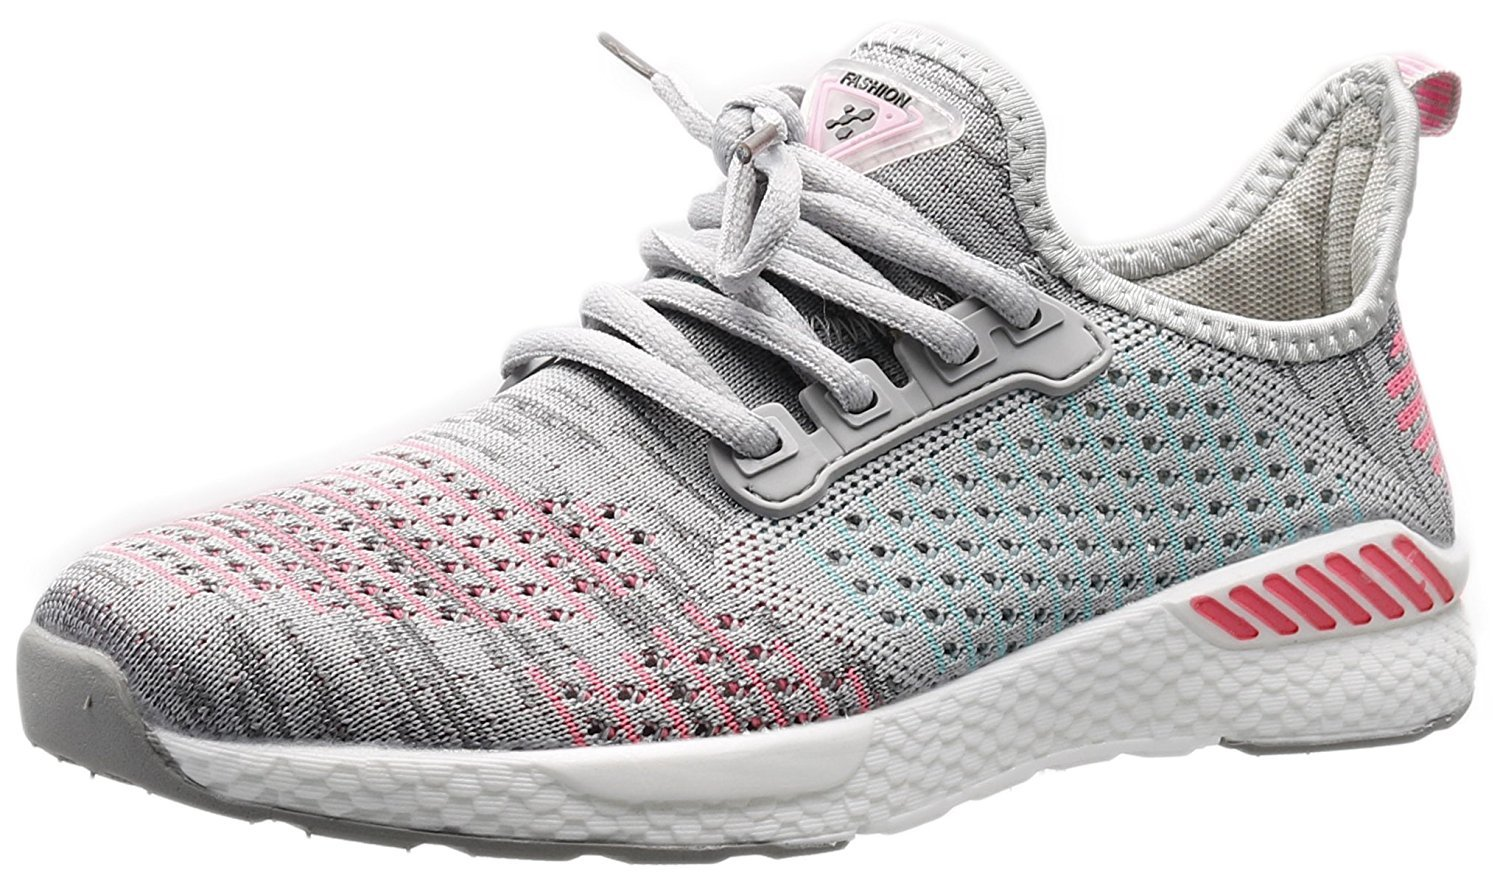 Beeagle Womens Fashion Sneakers Lightweight Athletic Running Casual Breathable Walking Shoes Gray 38